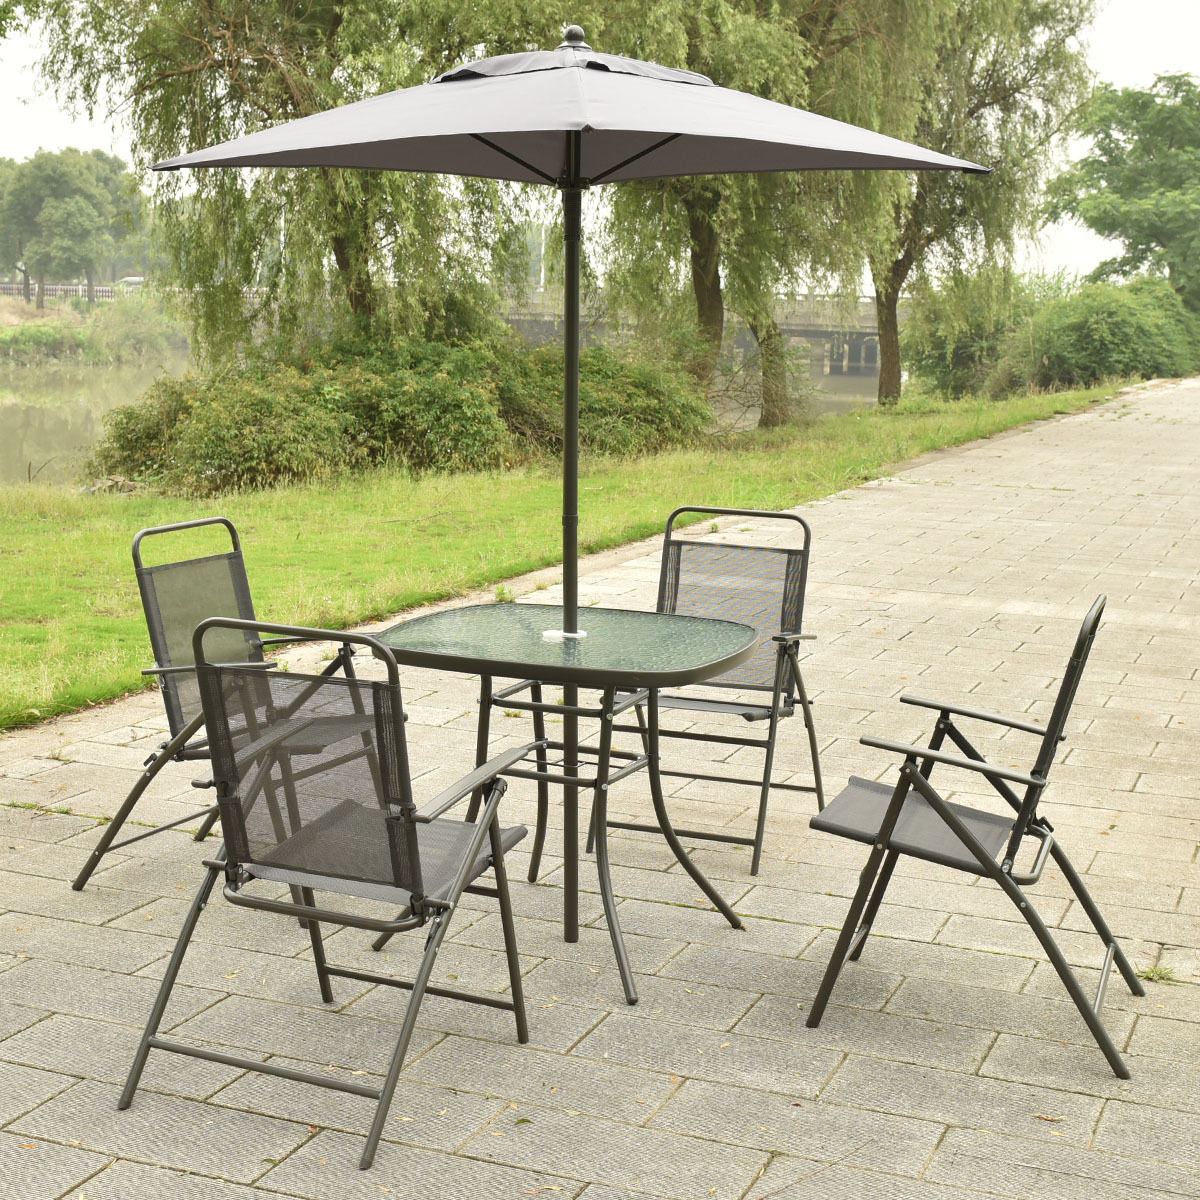 Patio Furniture Table And Chairs 6 Pcs Patio Folding Furniture Set With An Umbrella